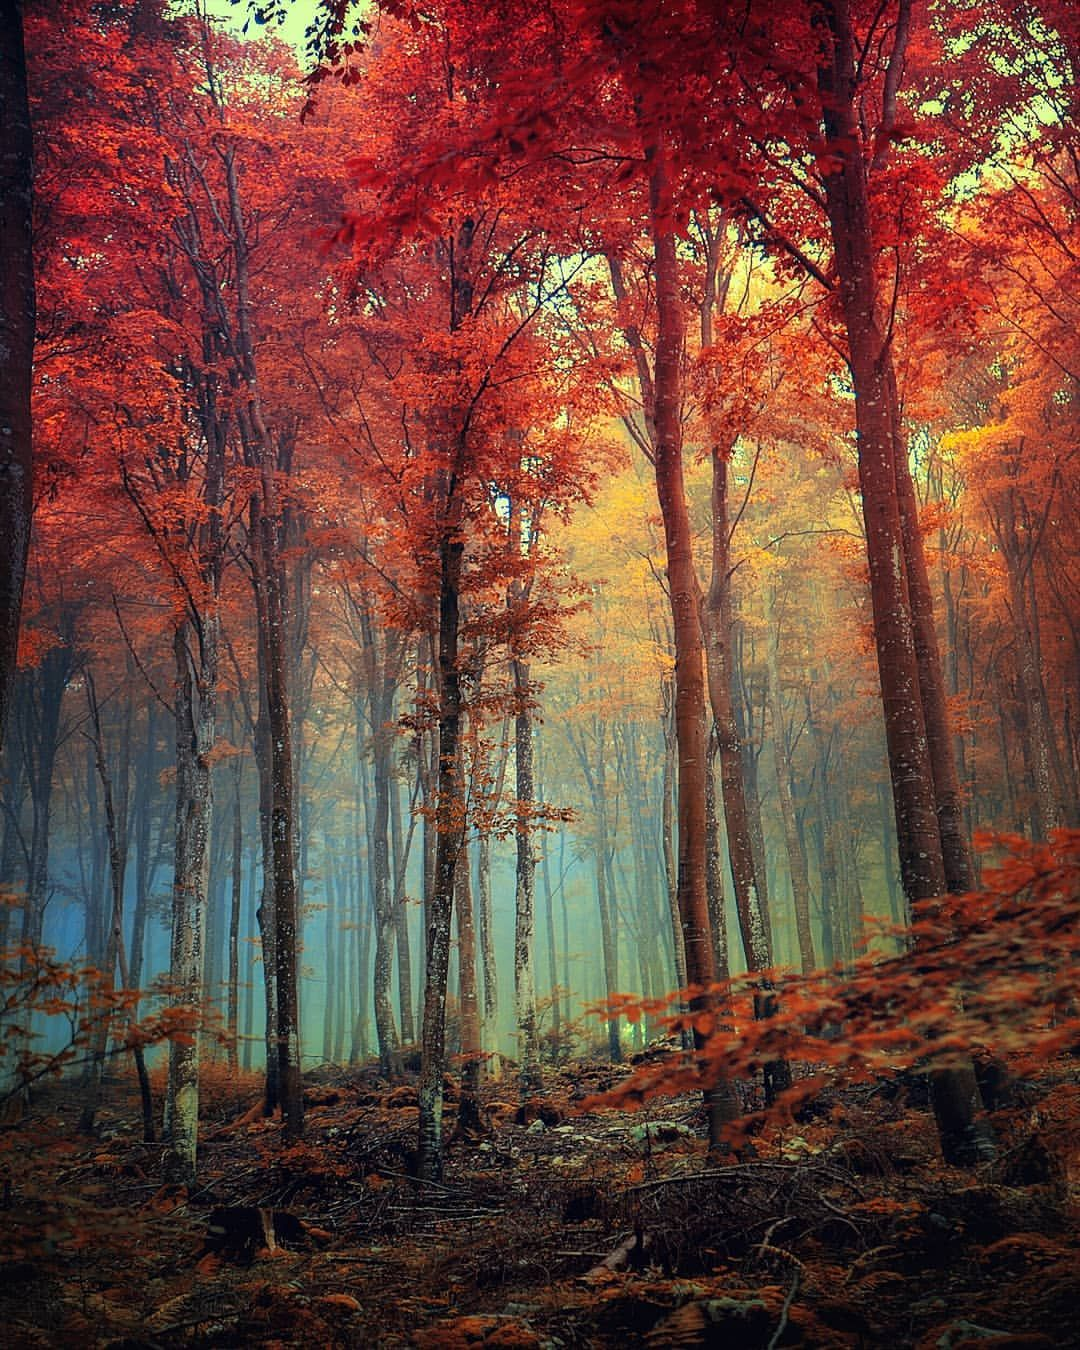 Magical Landscape and Nature Photography by Jan Poloni #scenery